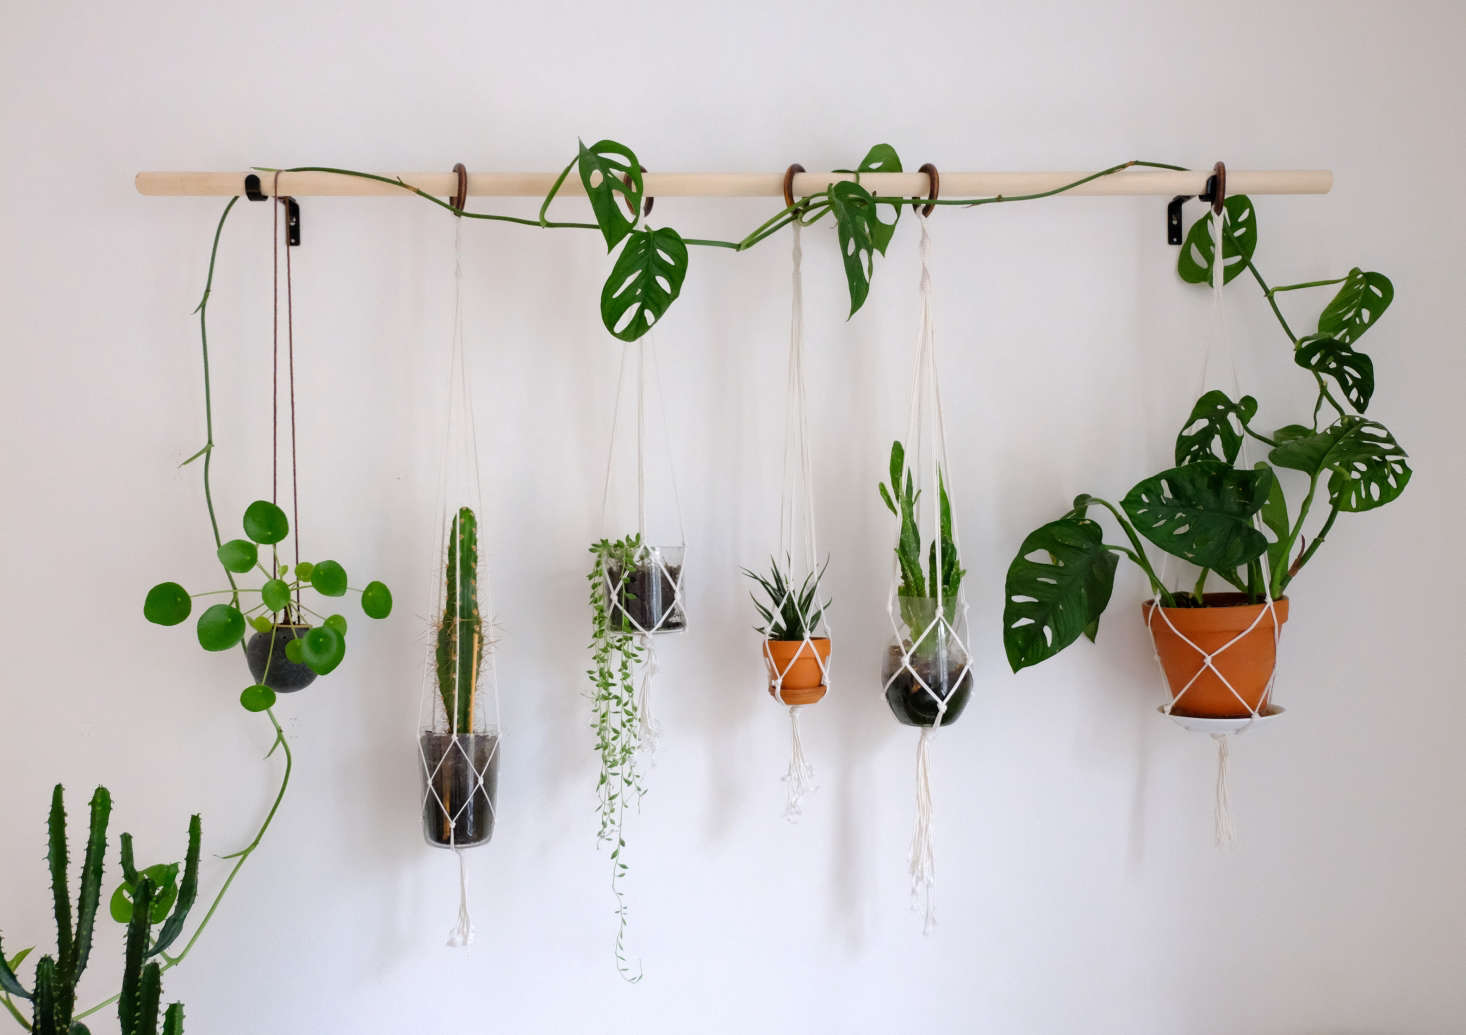 """The broomstick is about 1.5 meters (16 feet) long. It currently displays, from left to right: """"pilea, a cactus (don't know the name), string of tears, Haworthia, Opuntia, and a monstera—a monkey mask, also known as the Swiss cheese plant."""""""